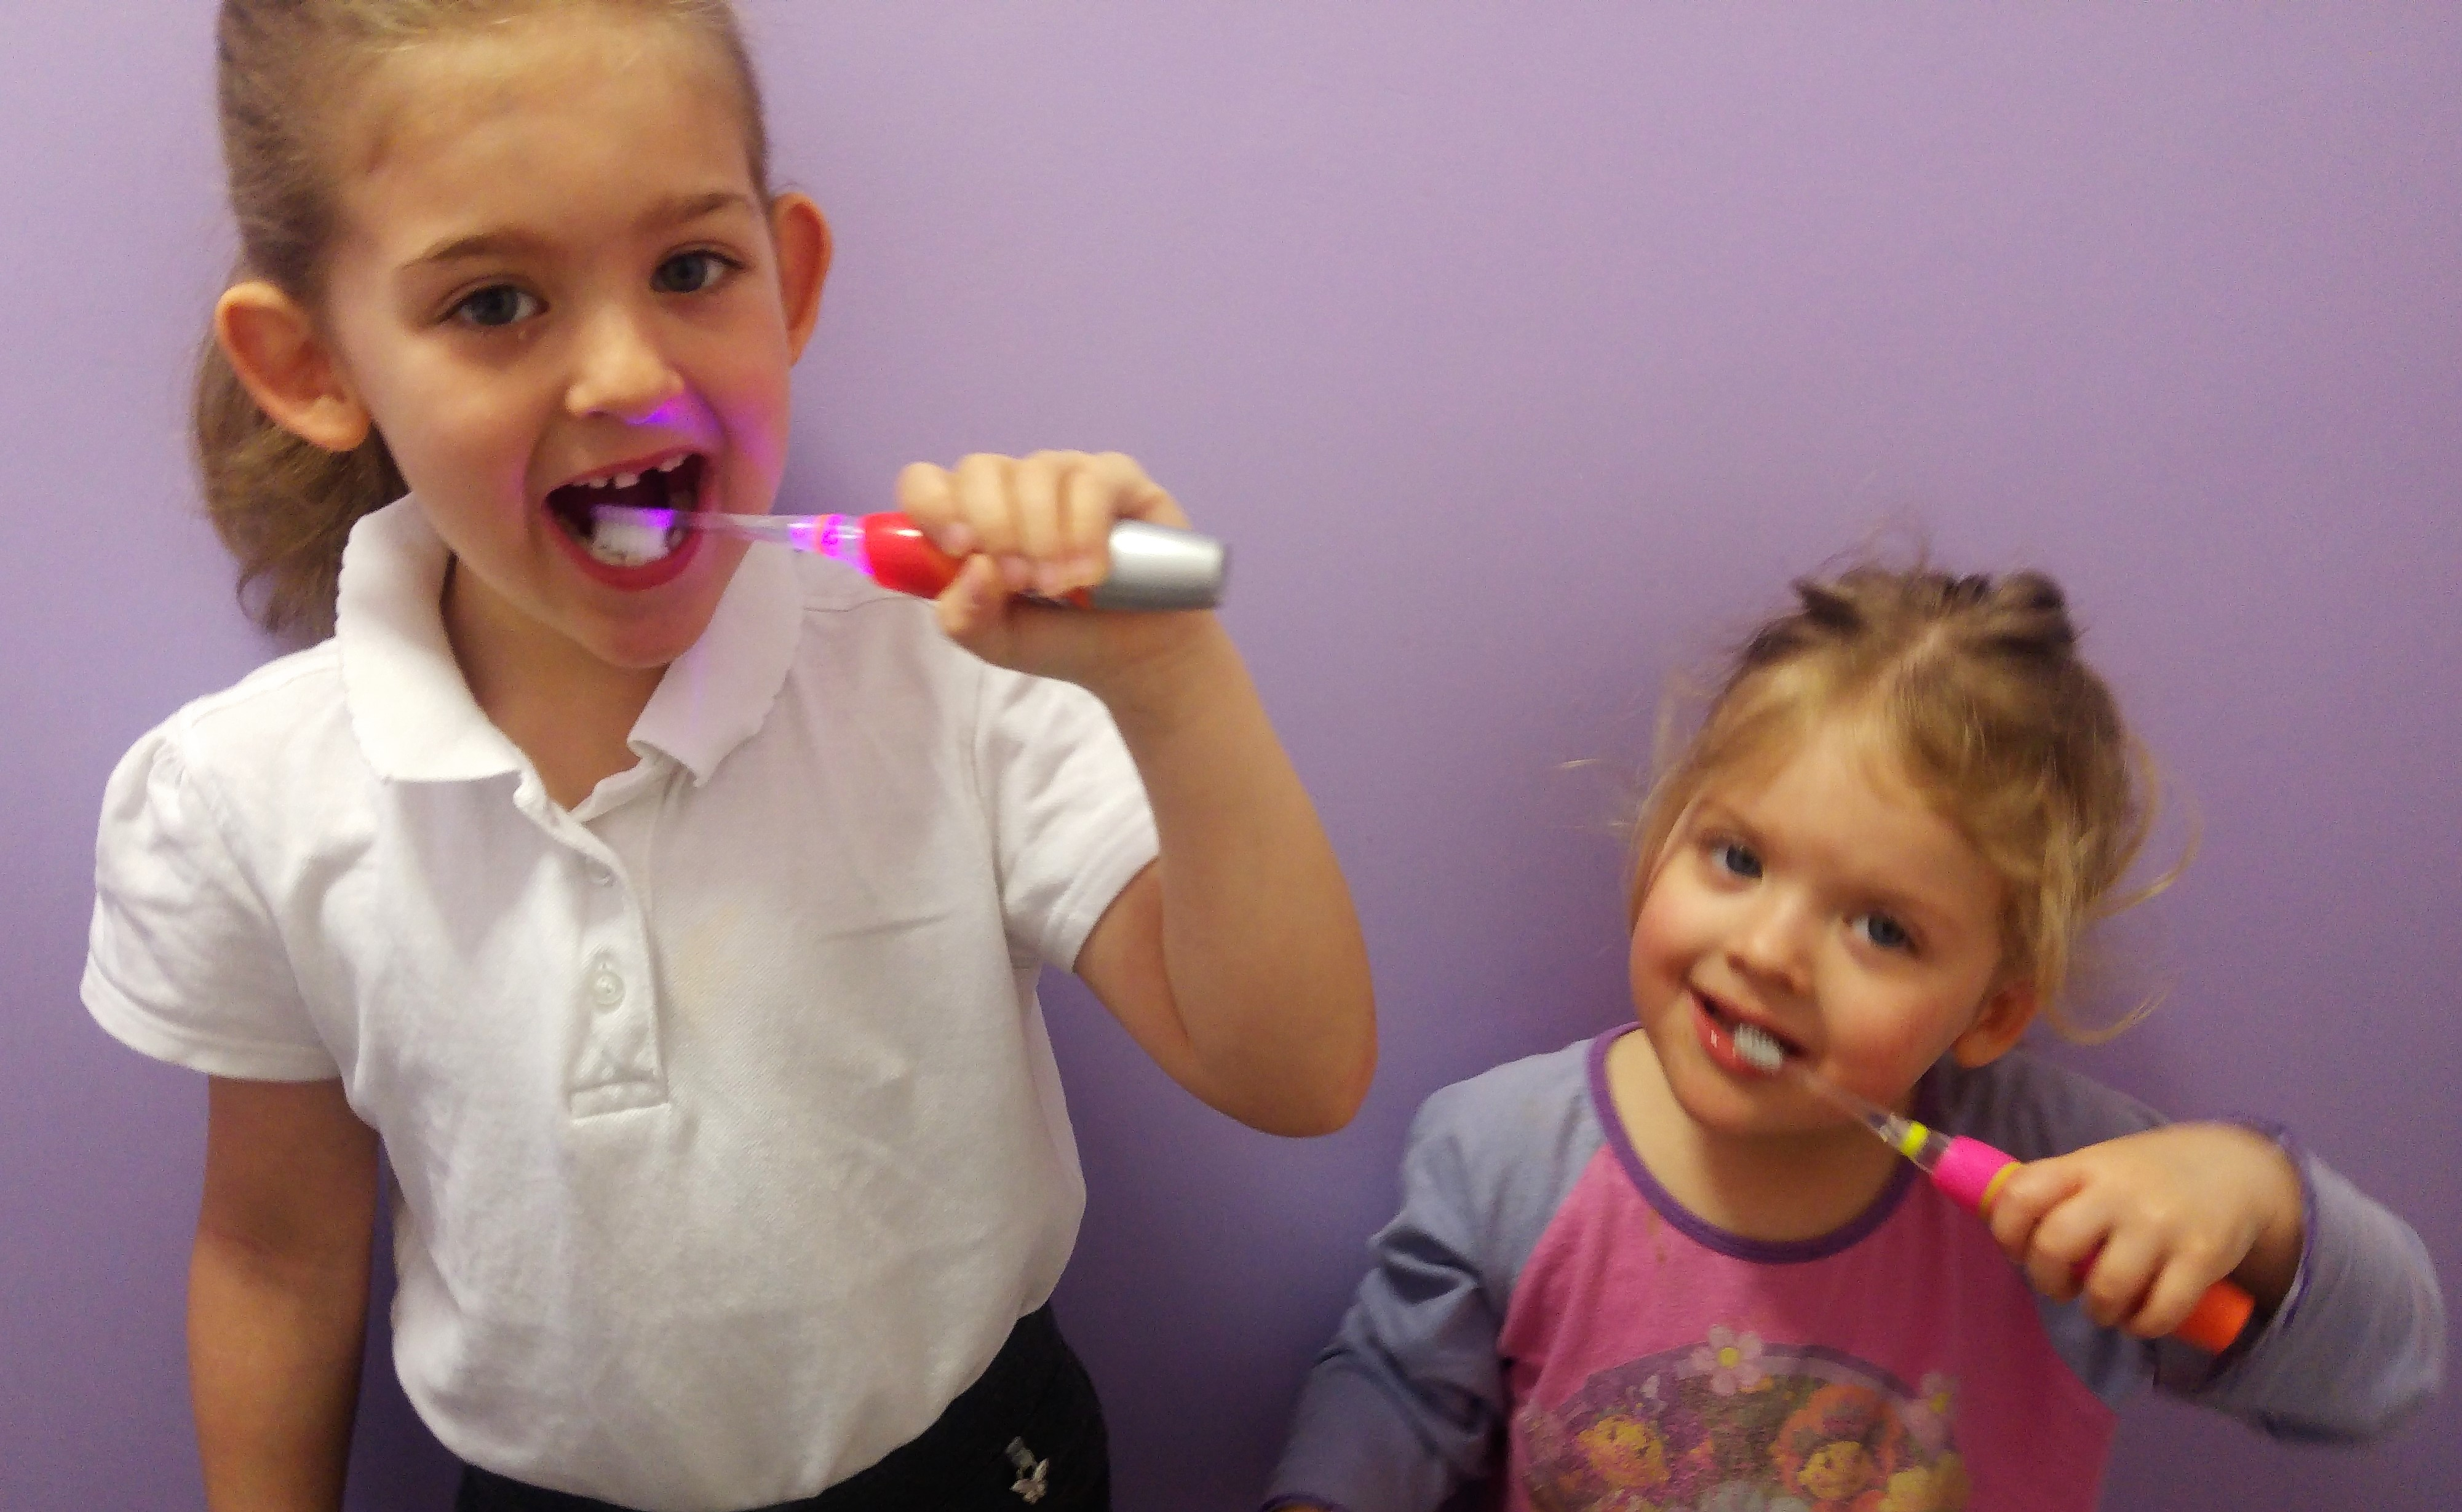 Tooth brushing fun with brush-baby